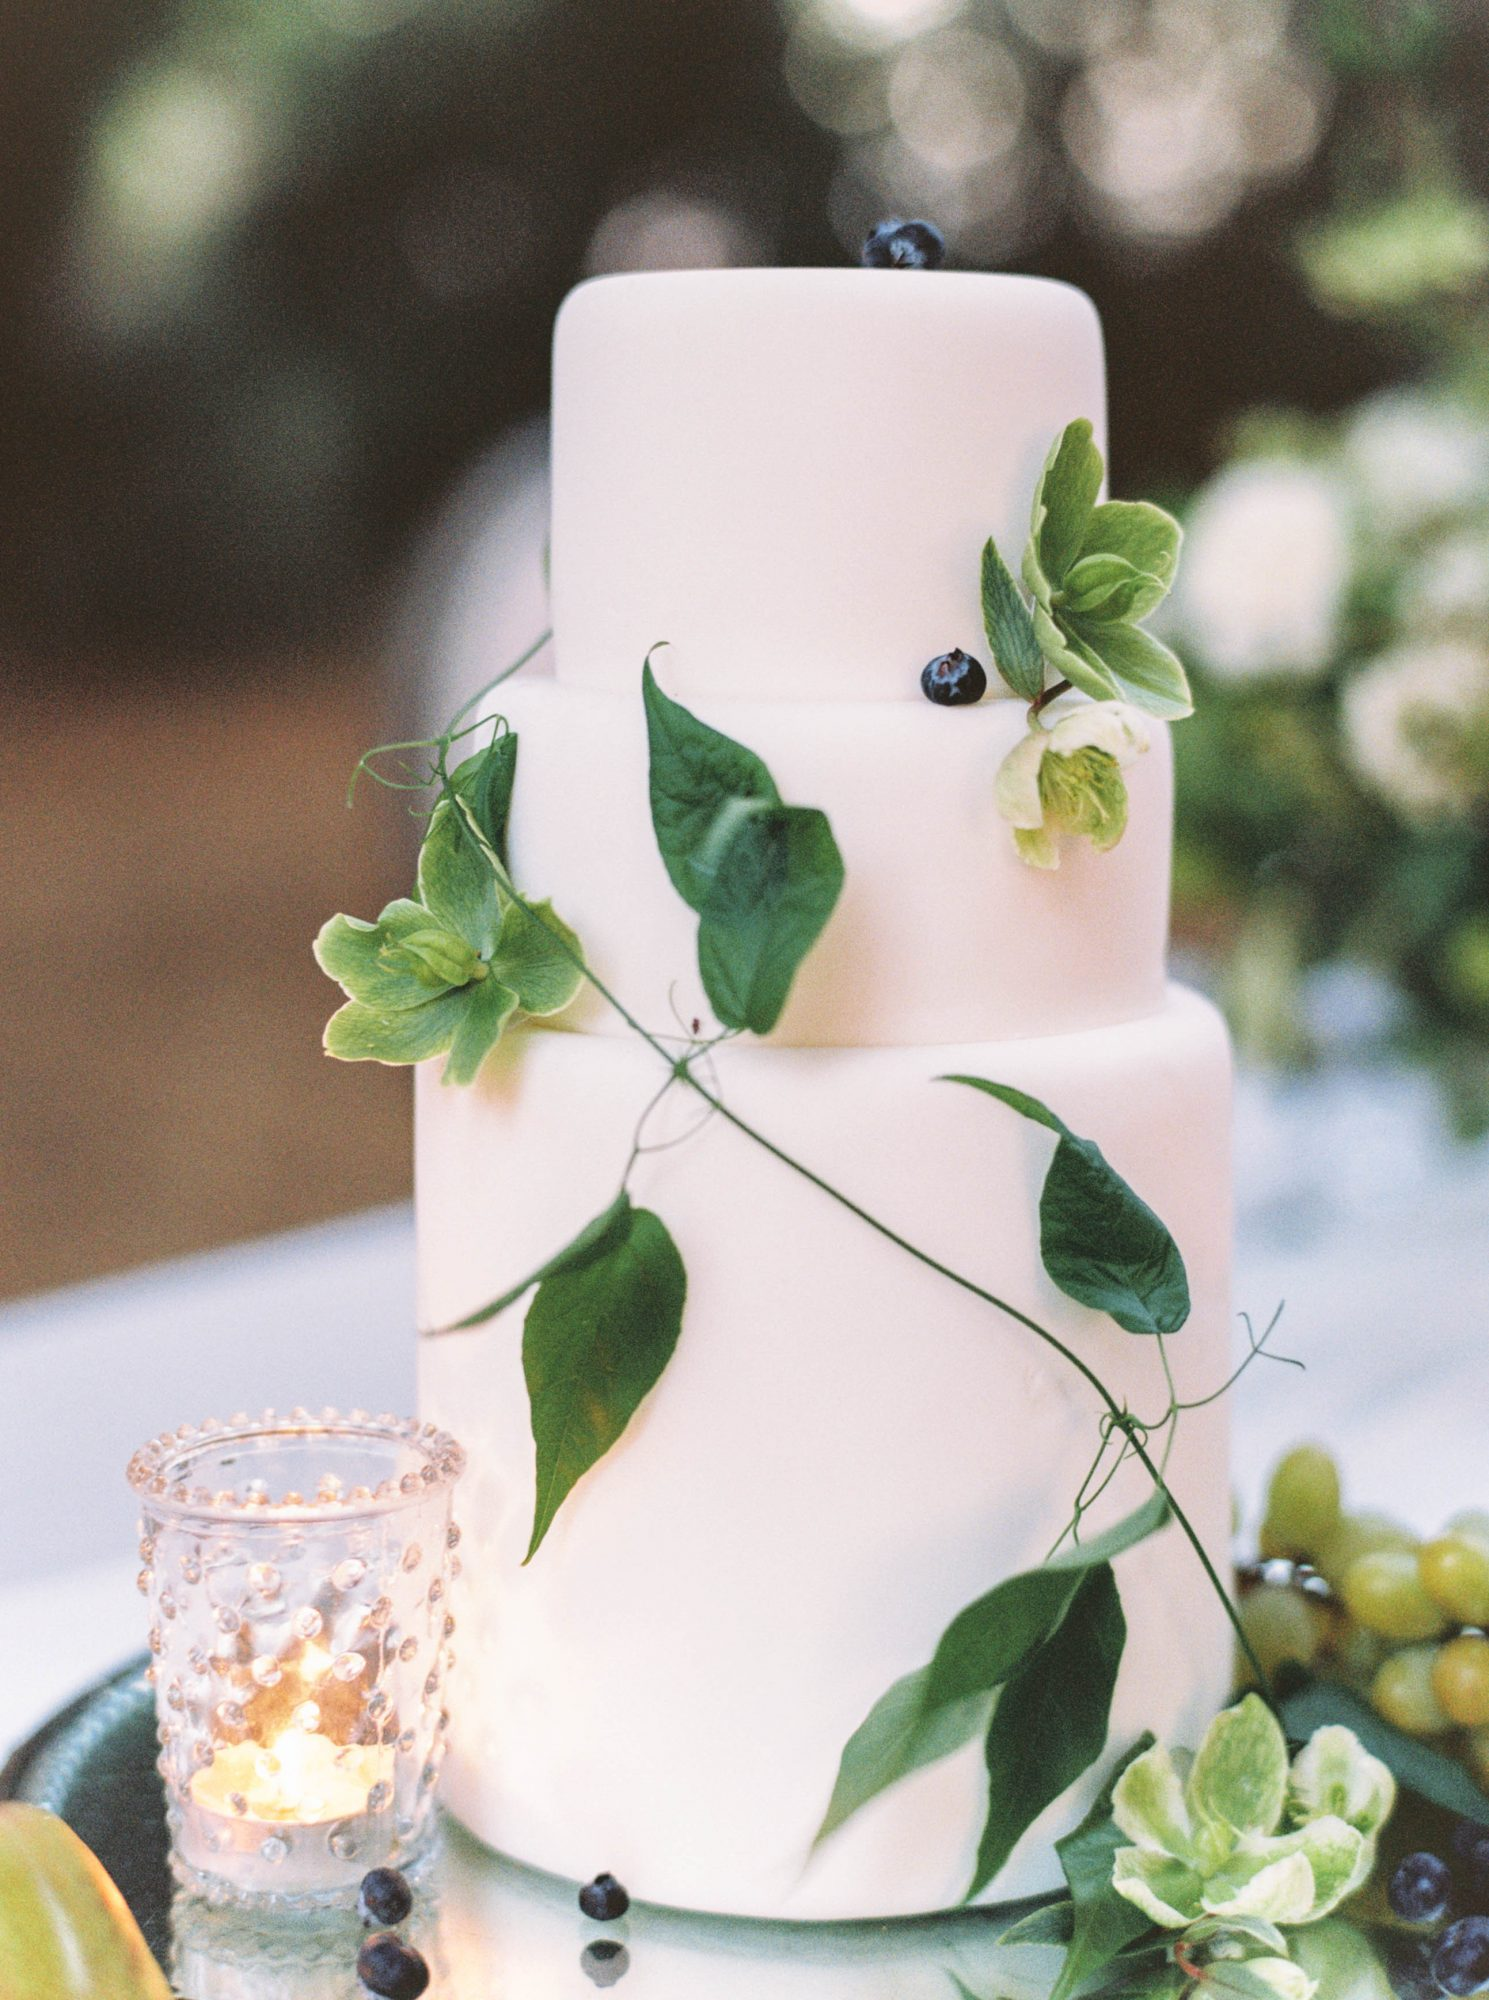 3-tier white cake wrapped in leafy vine